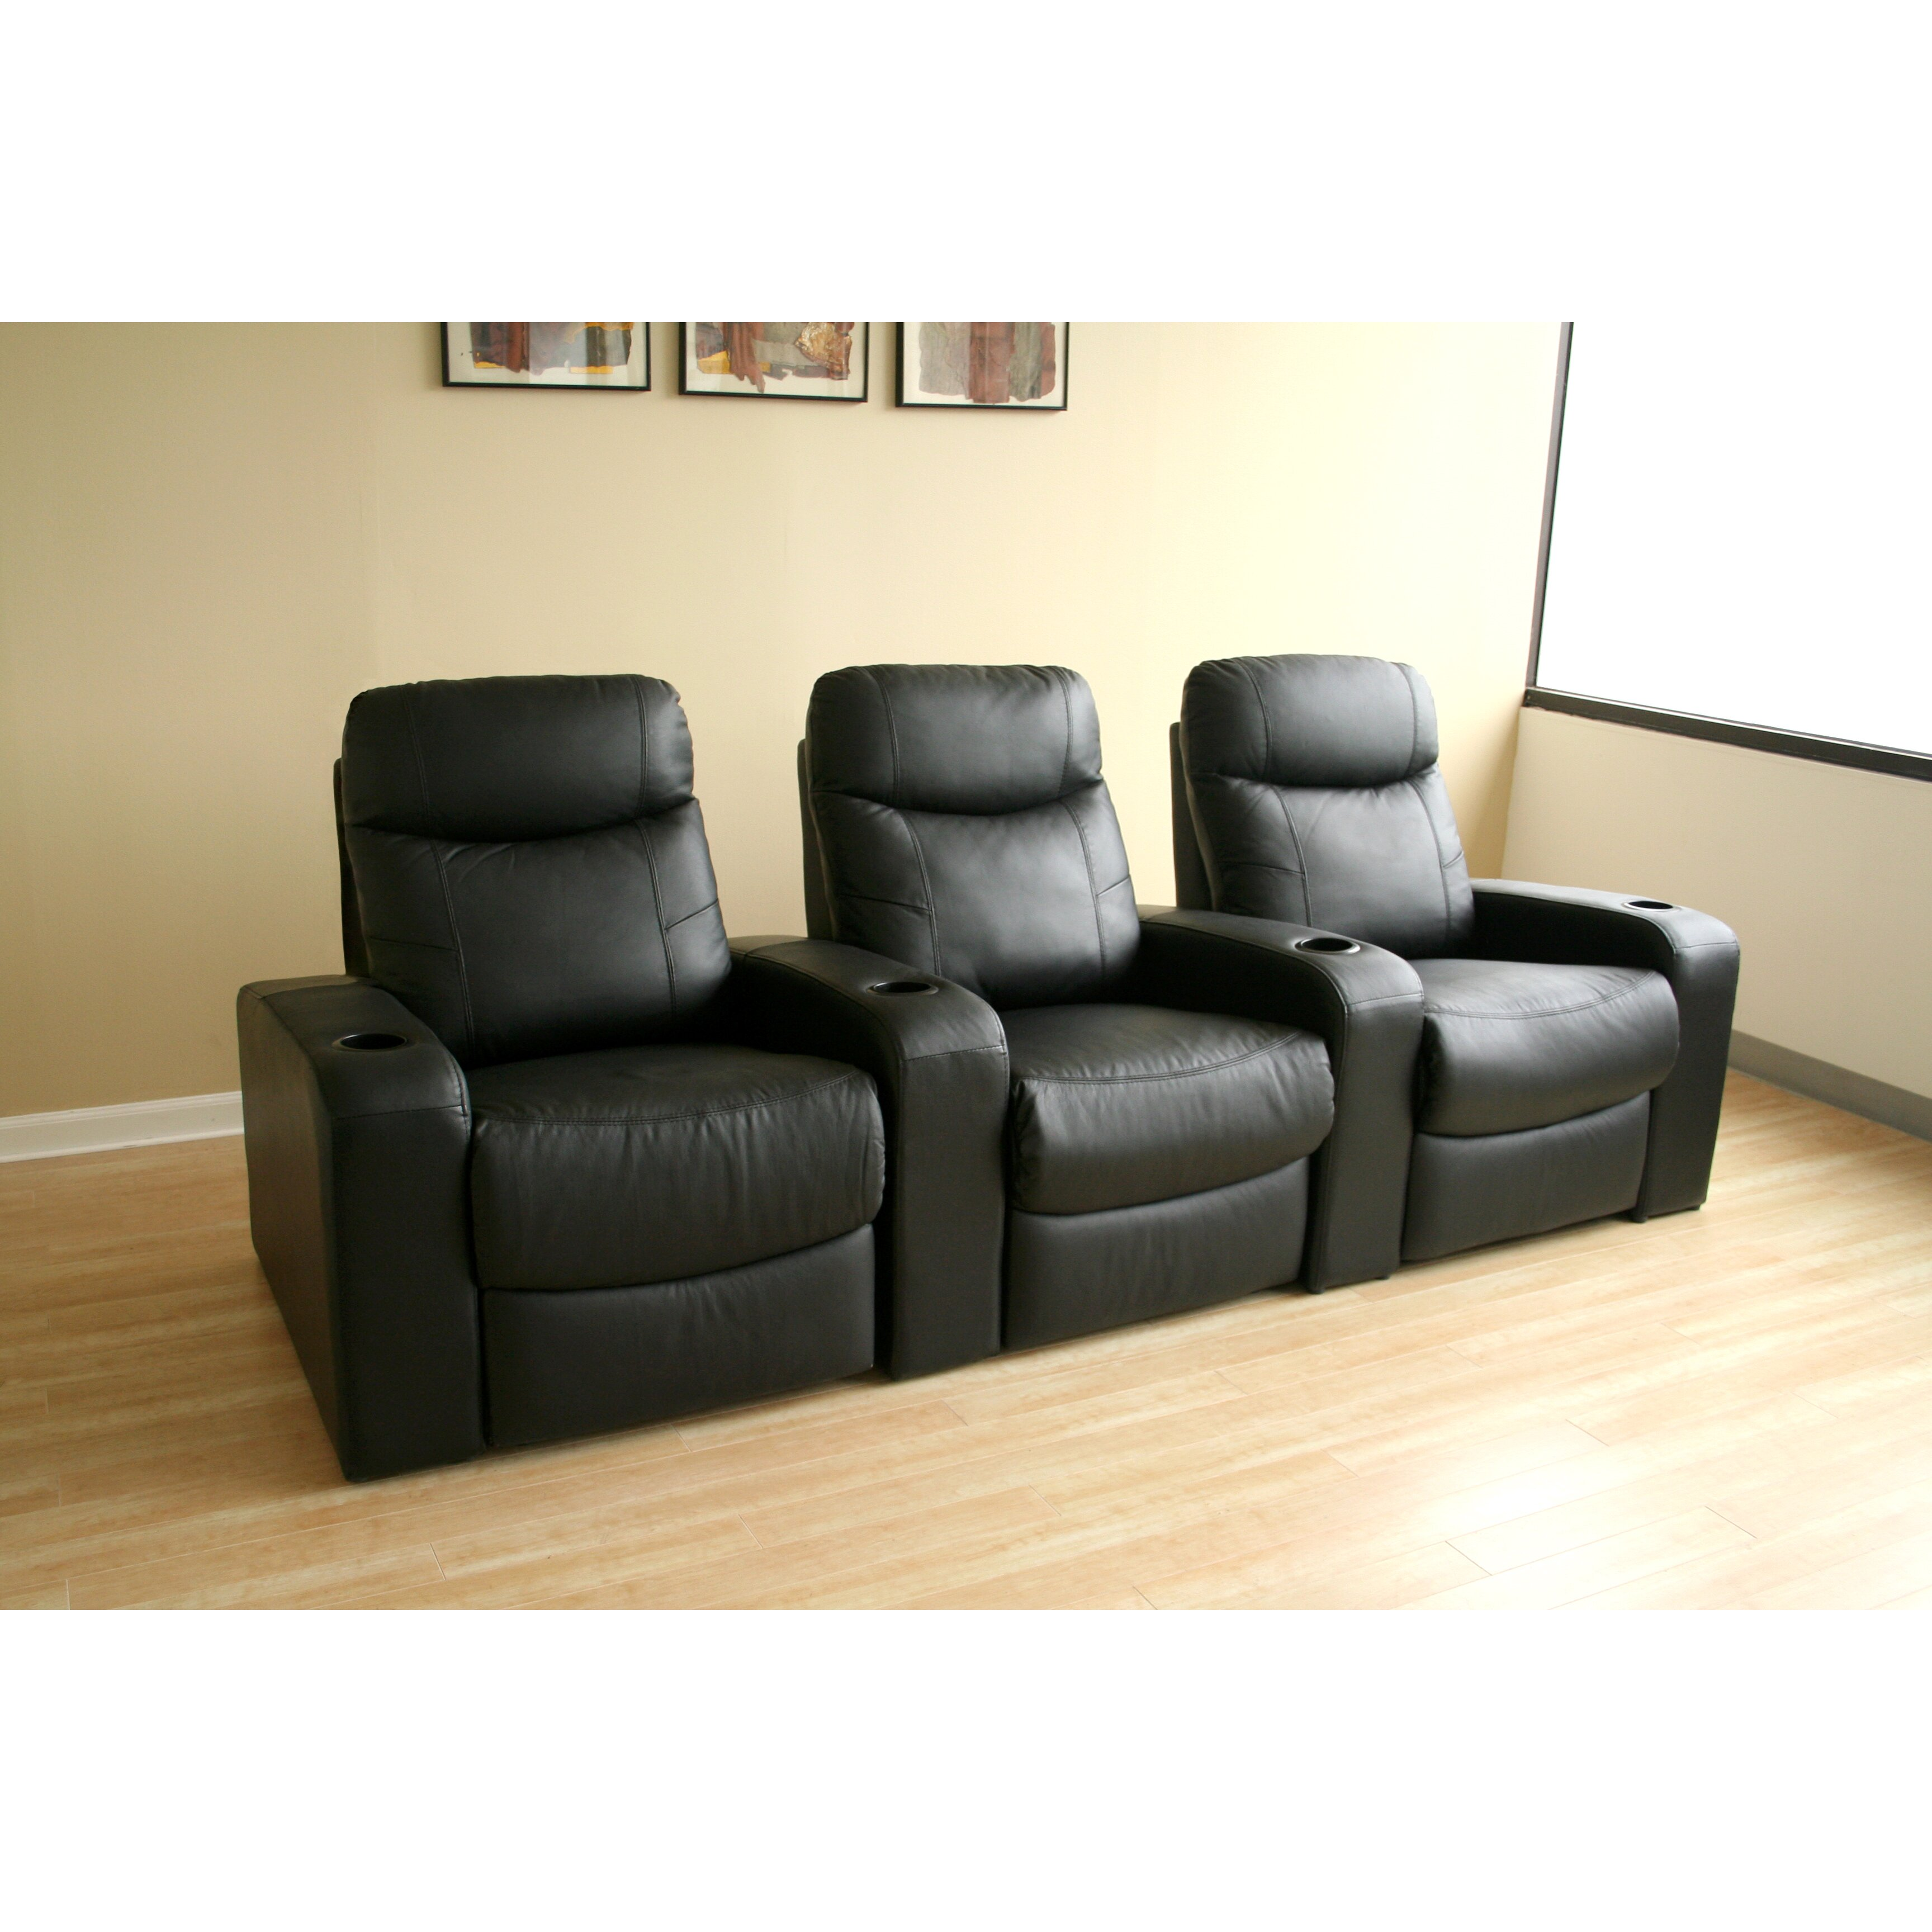 Wholesale interiors baxton studio home theater recliner row of 3 reviews wayfair - Wholesale home interiors ...